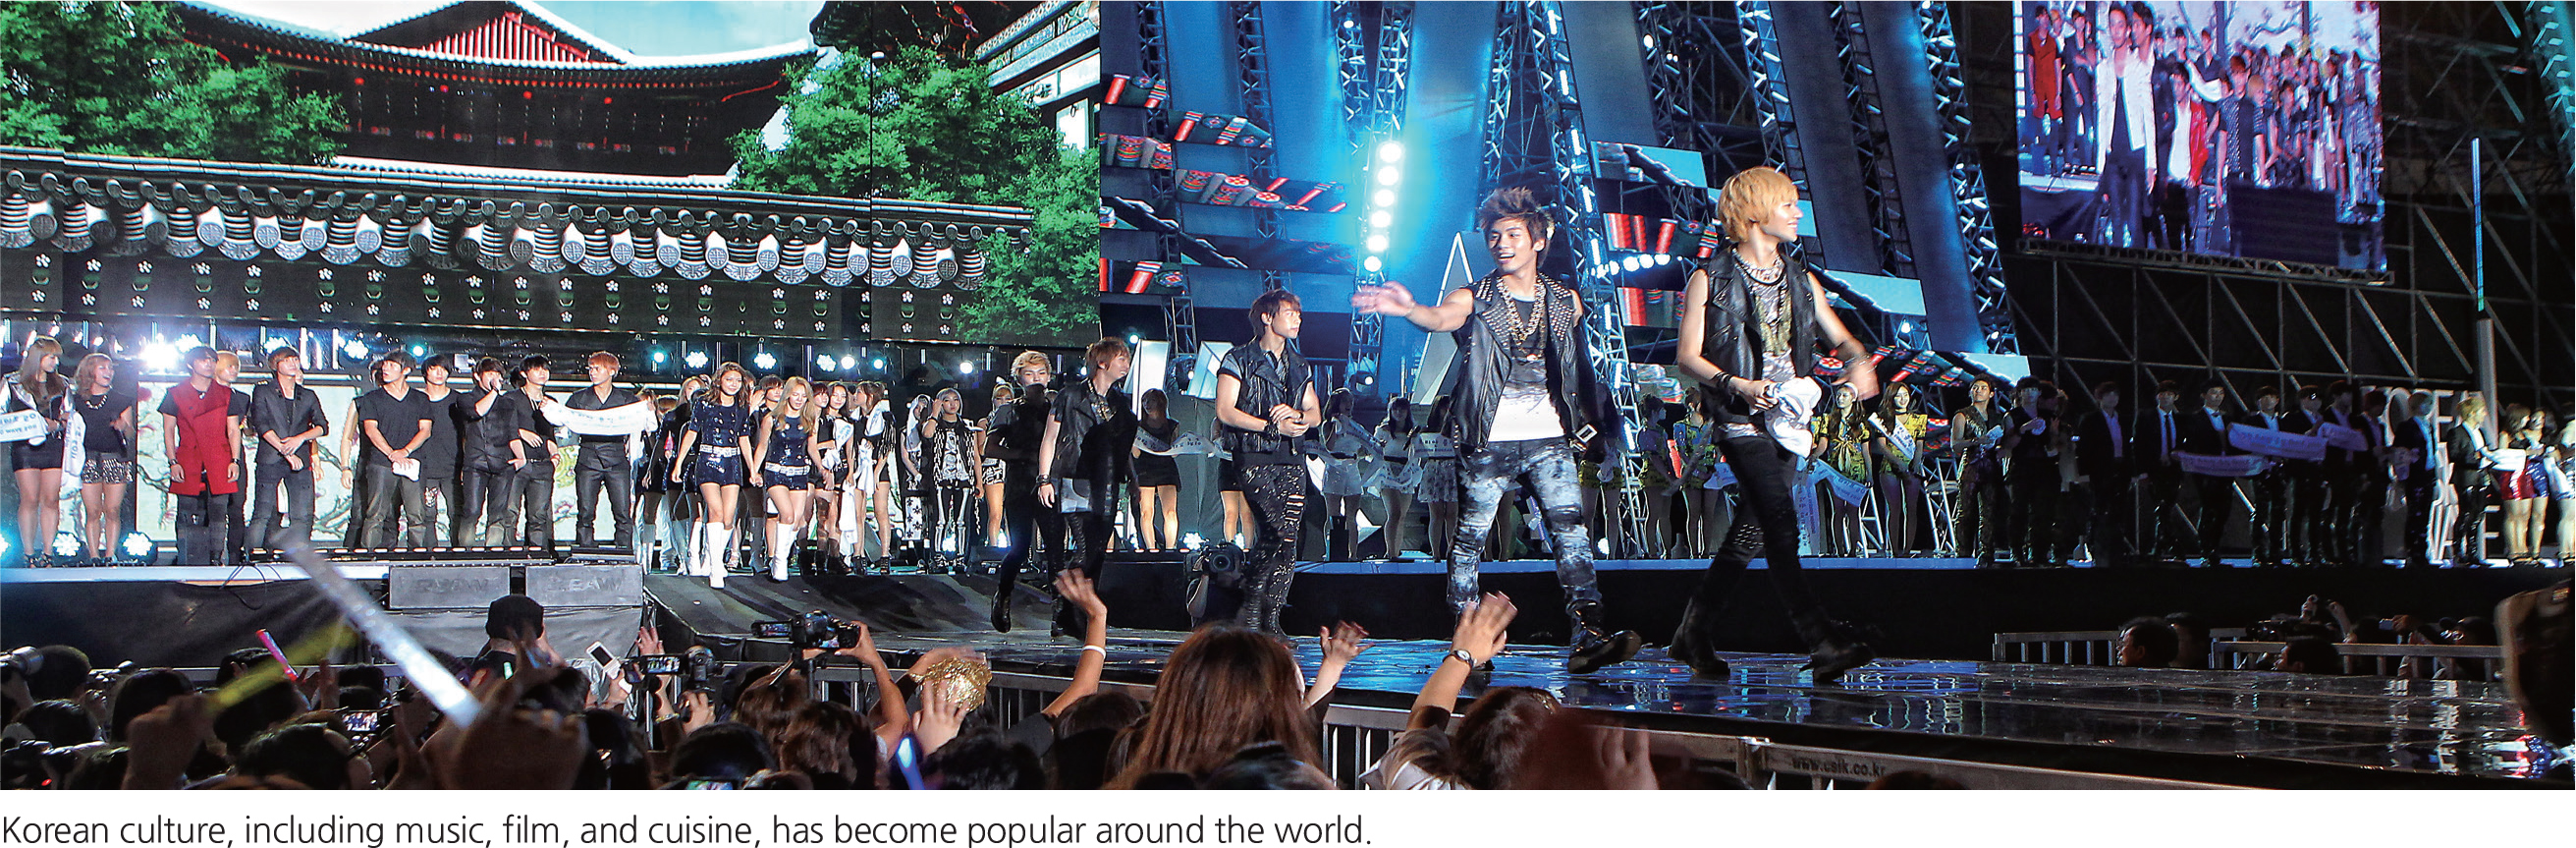 Korean culture, including music, film, and cuisine, has become popular around the world.